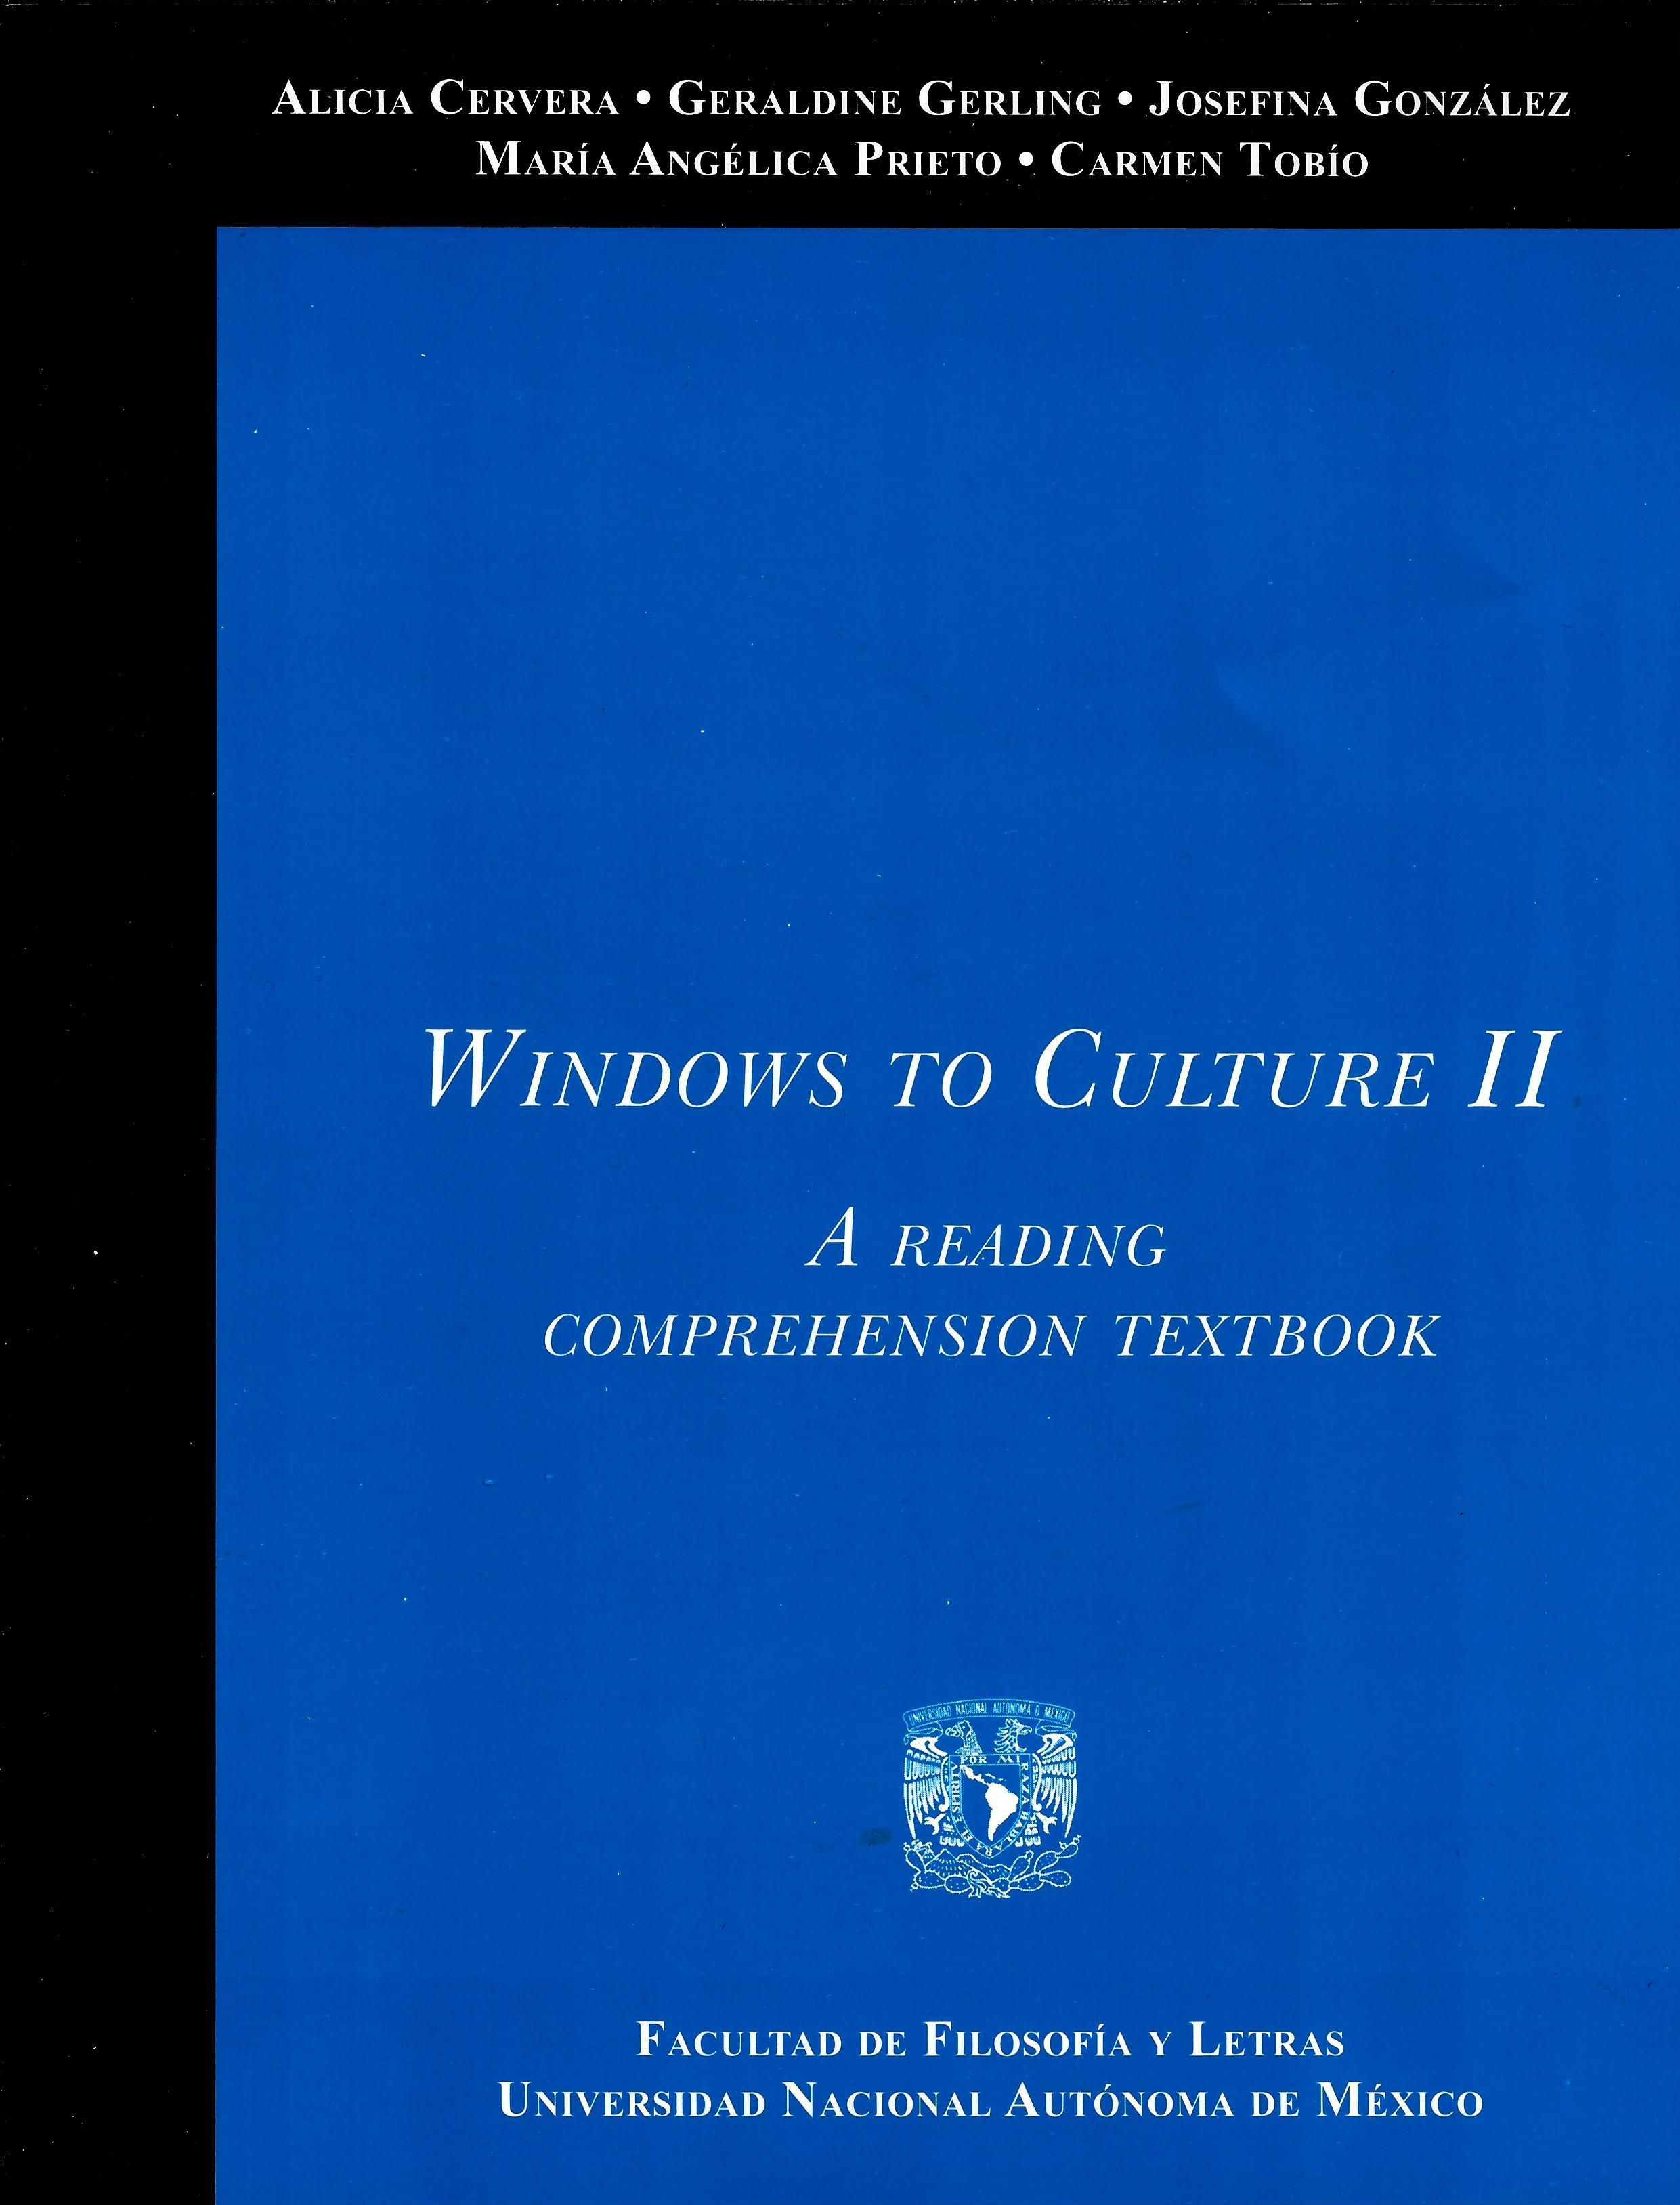 Windows to Culture II. A Reading Comprehension Textbook